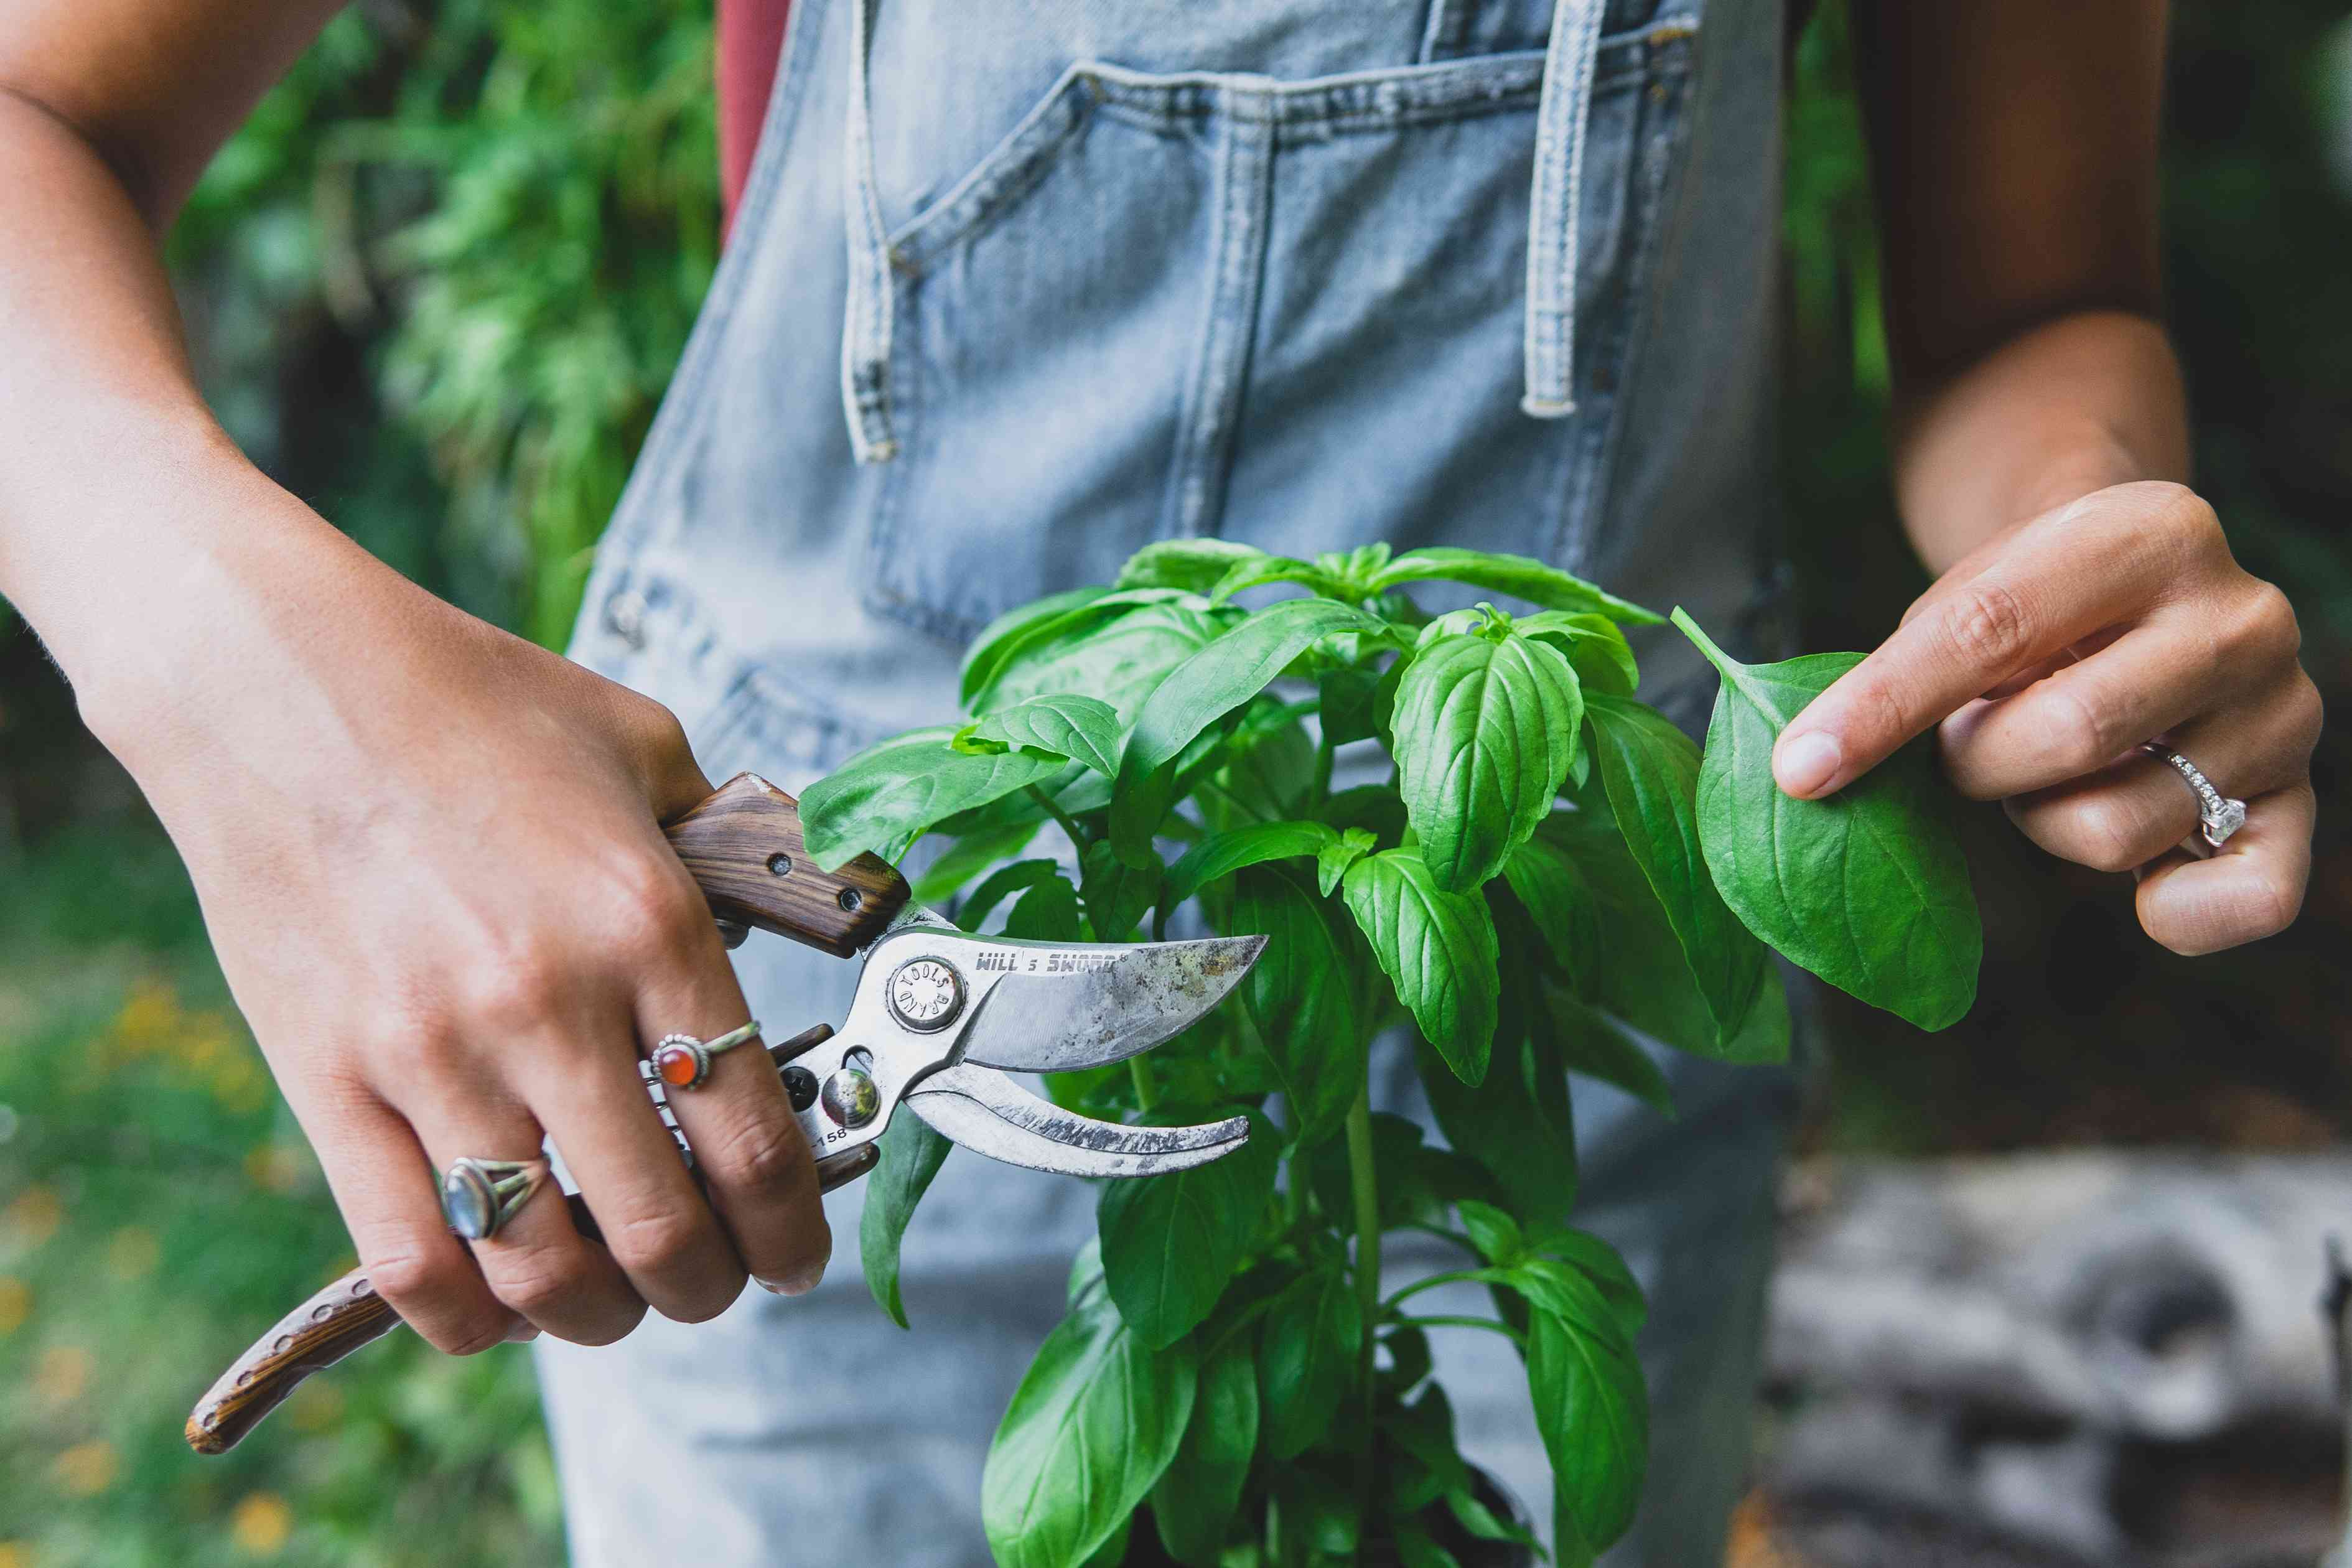 person in denim overalls picks off basil leaf from plant